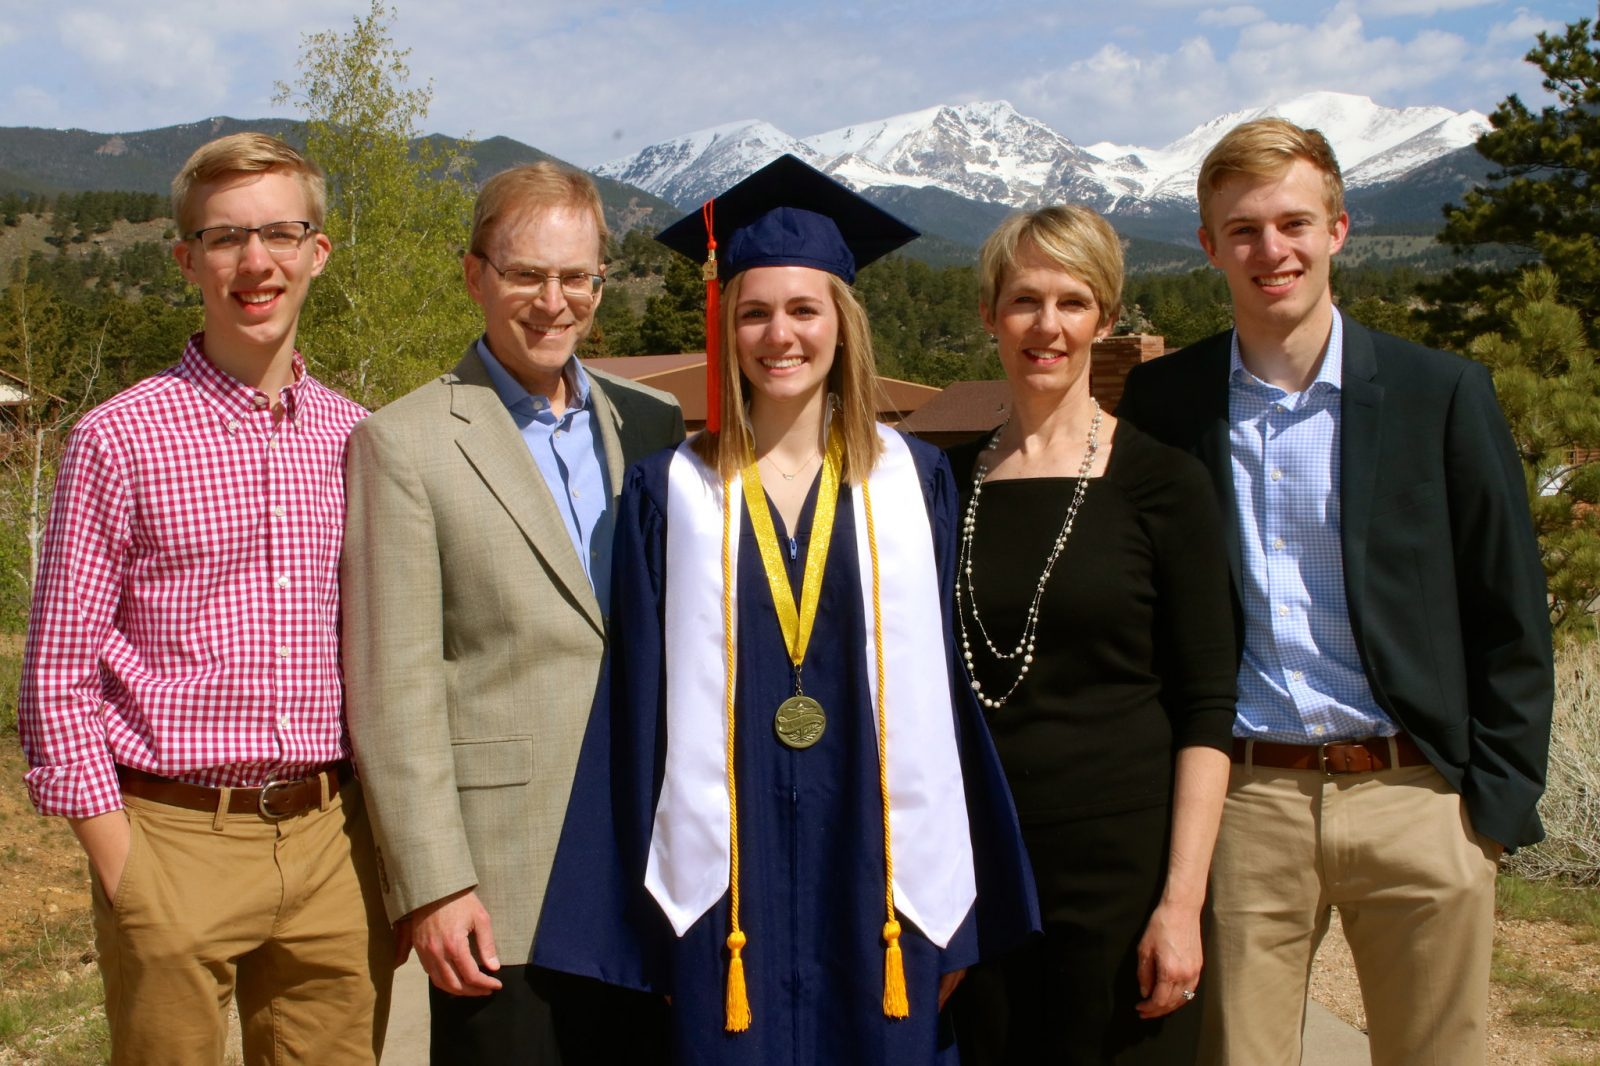 Online Christian homeschooling student's graduation celebrated by family